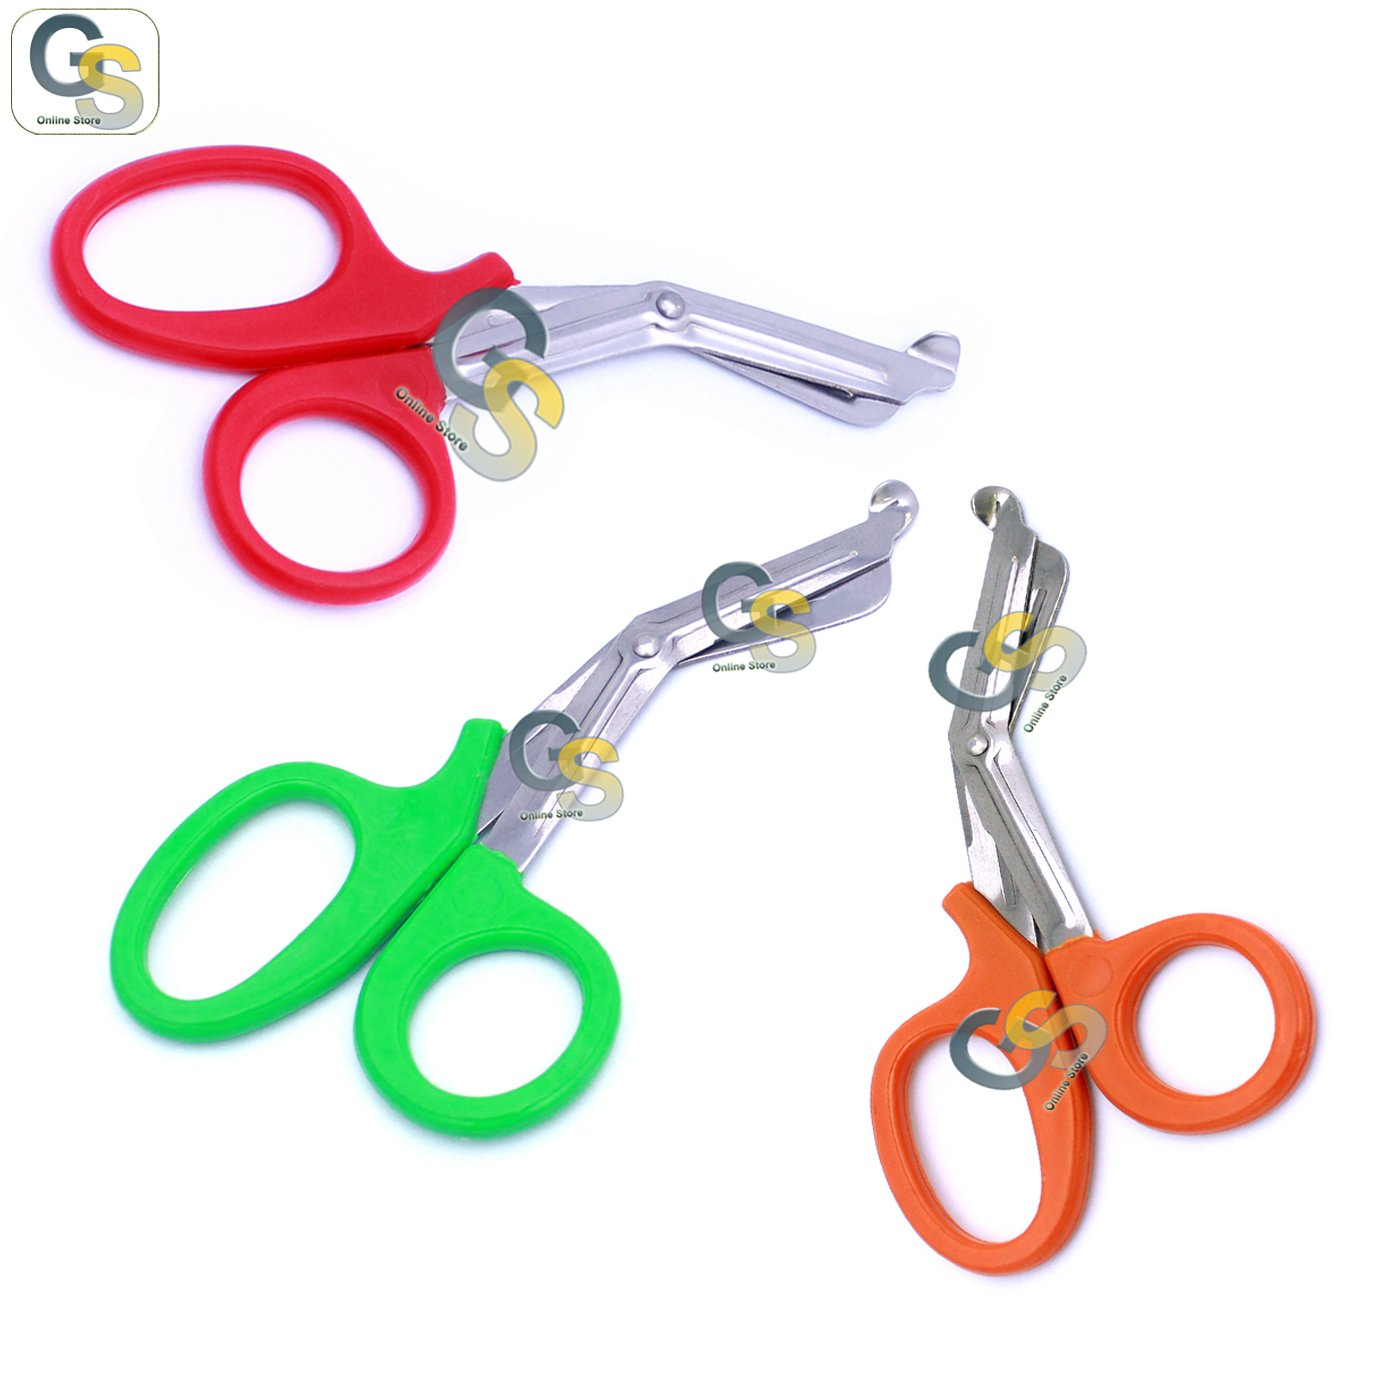 G.S 3 PCS (RED & GREEN & NEON ORANGE) PARAMEDIC UTILITY BANDAGE TRAUMA EMT EMS SHEARS SCISSORS 7.25 INCH STAINLESS STEEL